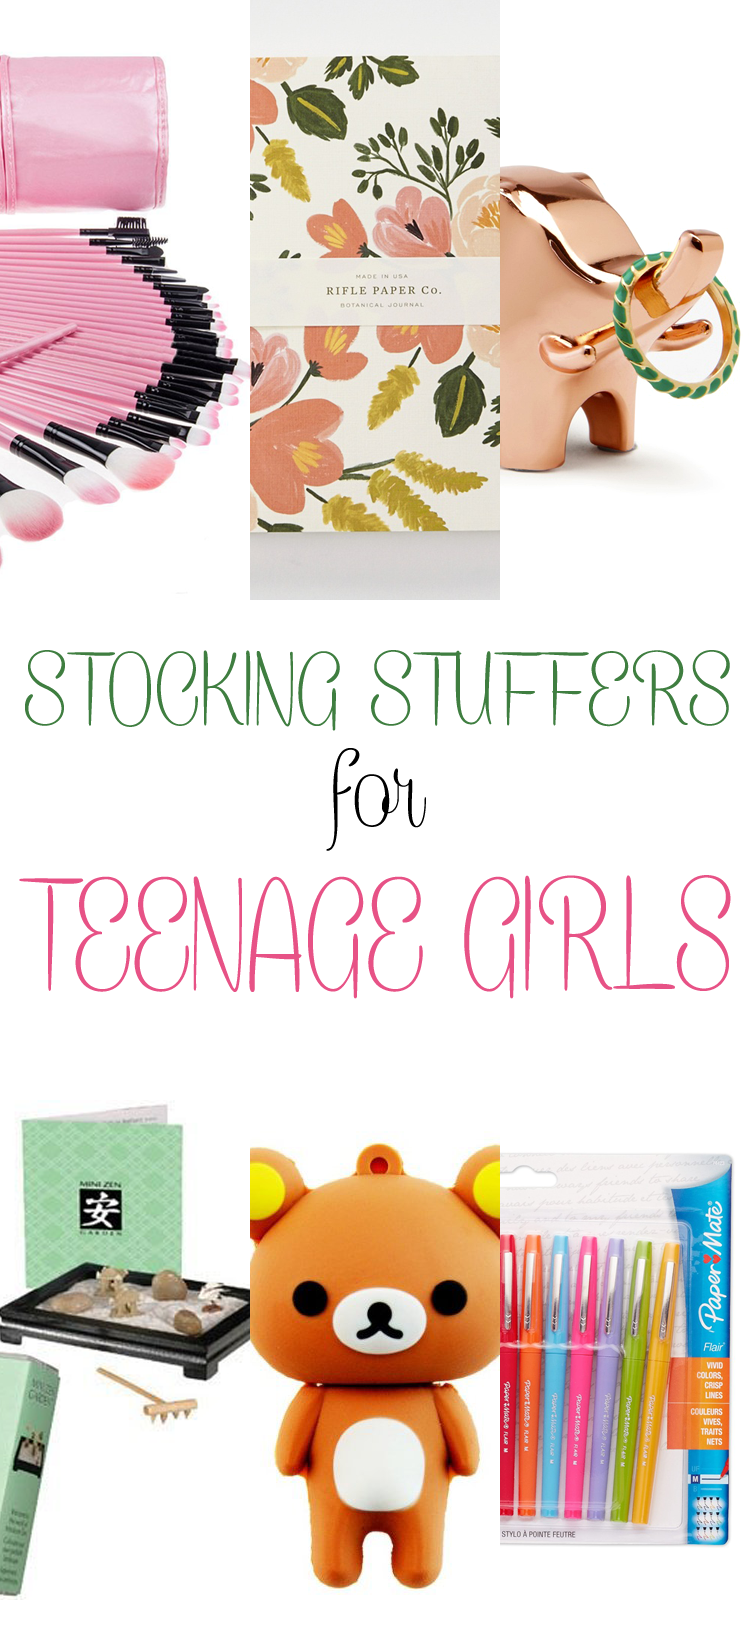 sister-xxxpic-stocking-stuffers-for-teenage-girls-college